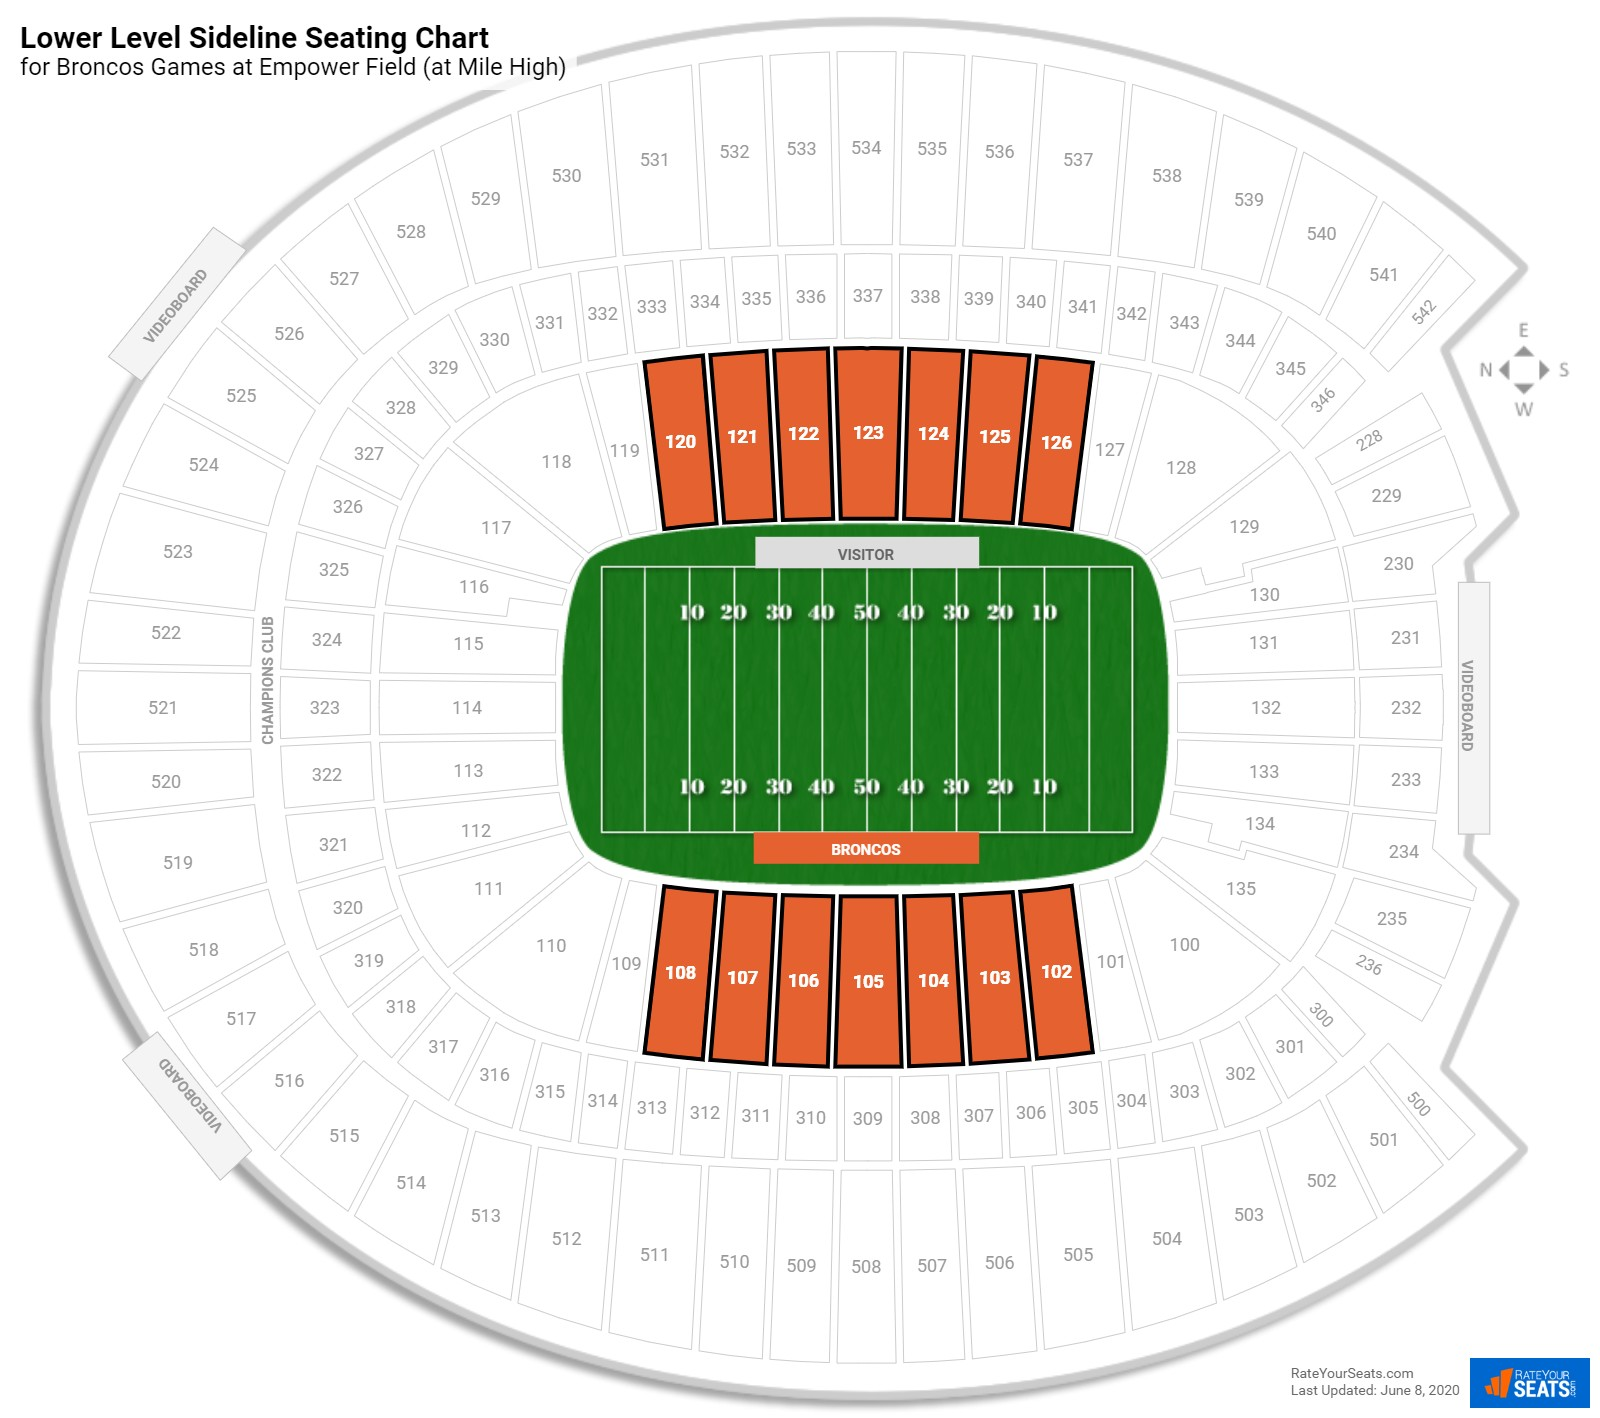 Sports Authority Field Lower Level Sideline seating chart